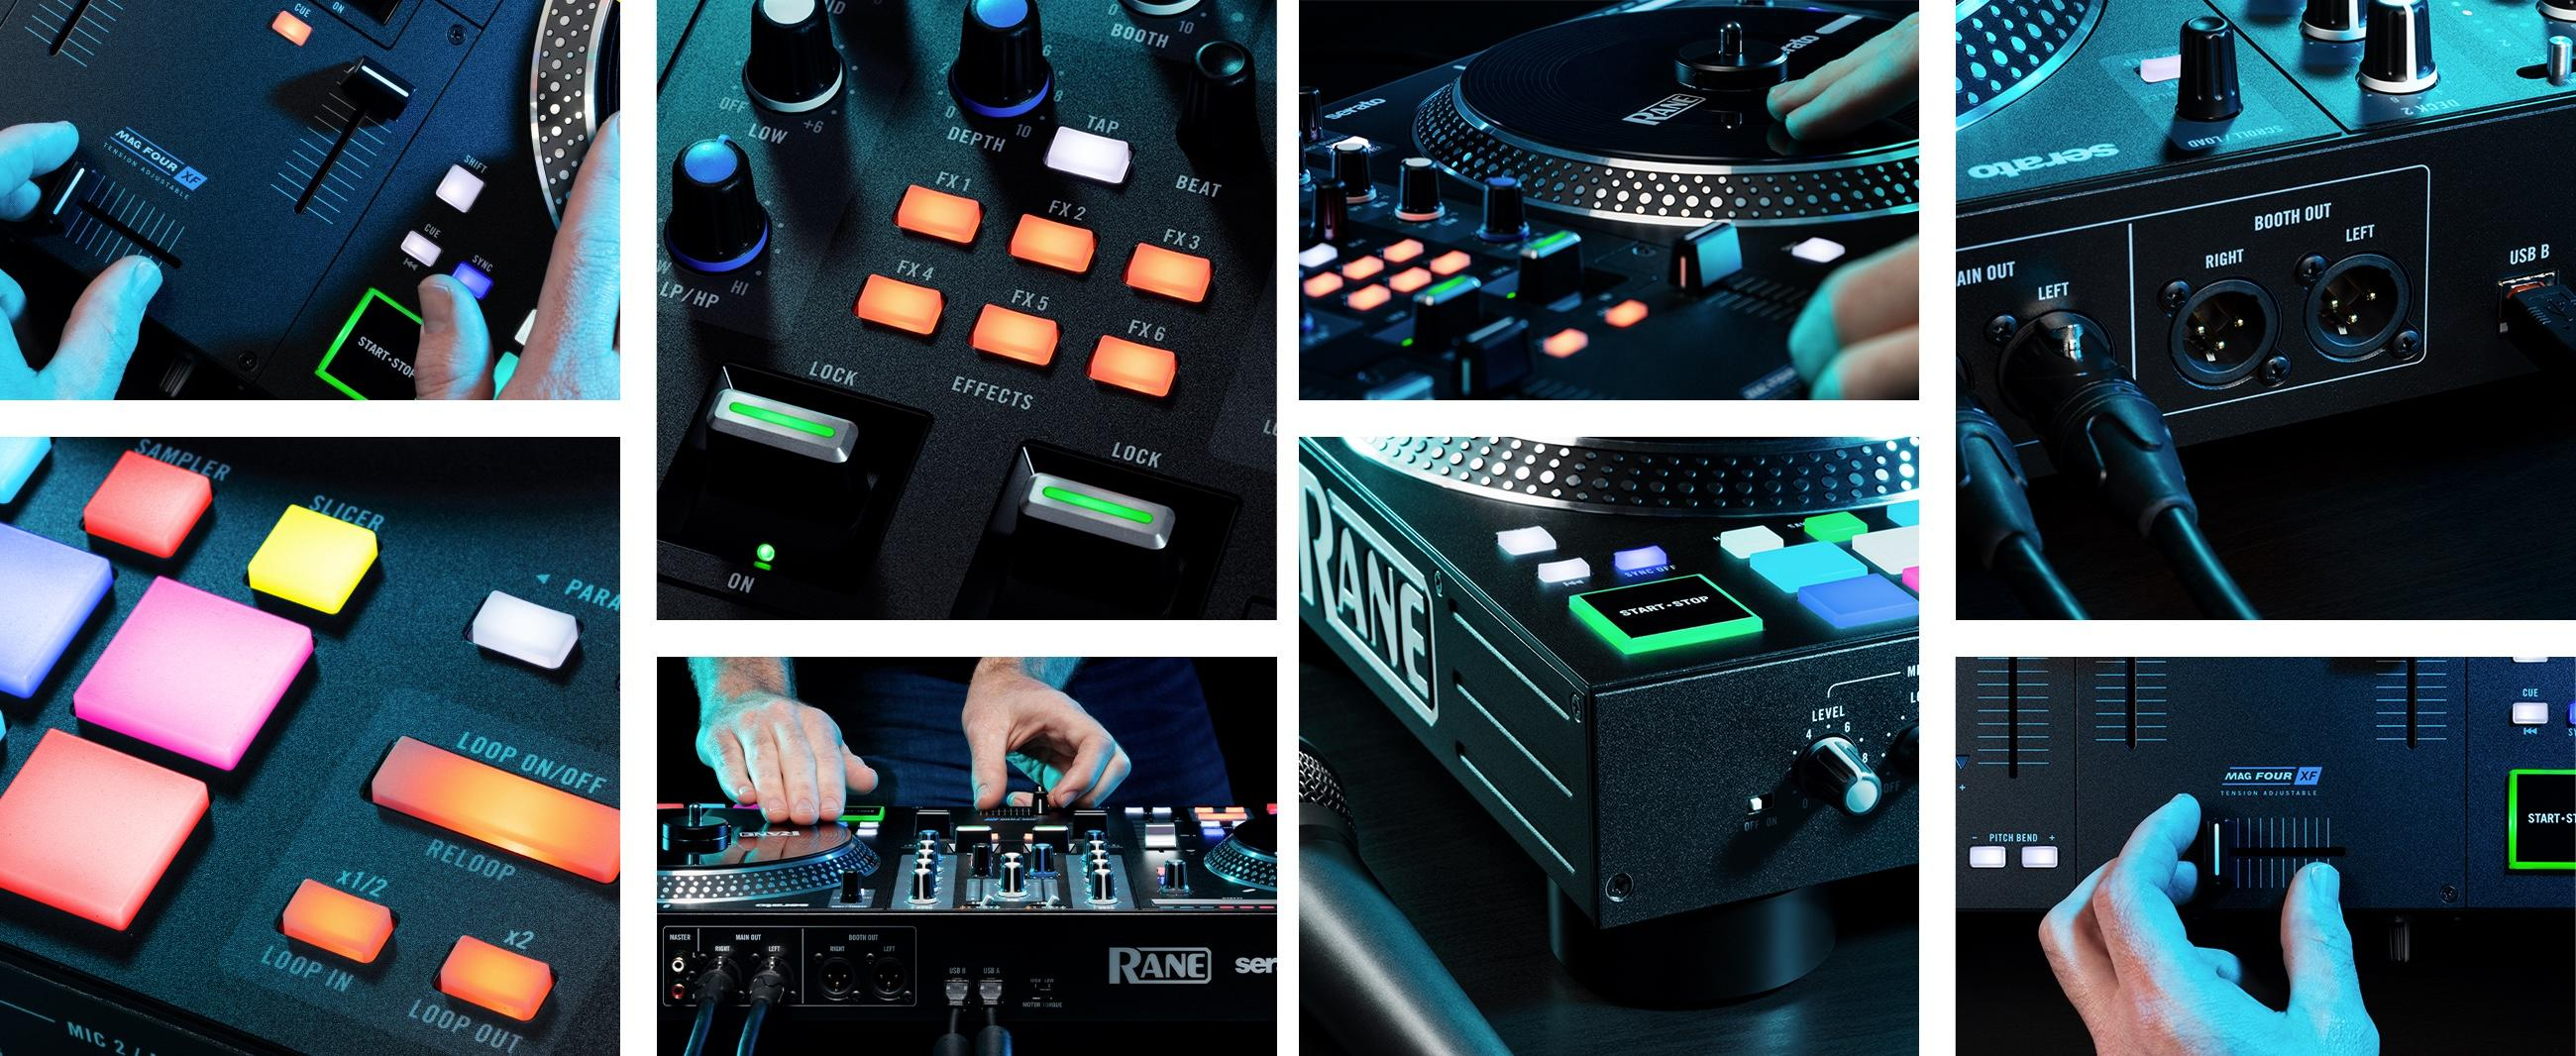 RANE ONE Lifestyle images